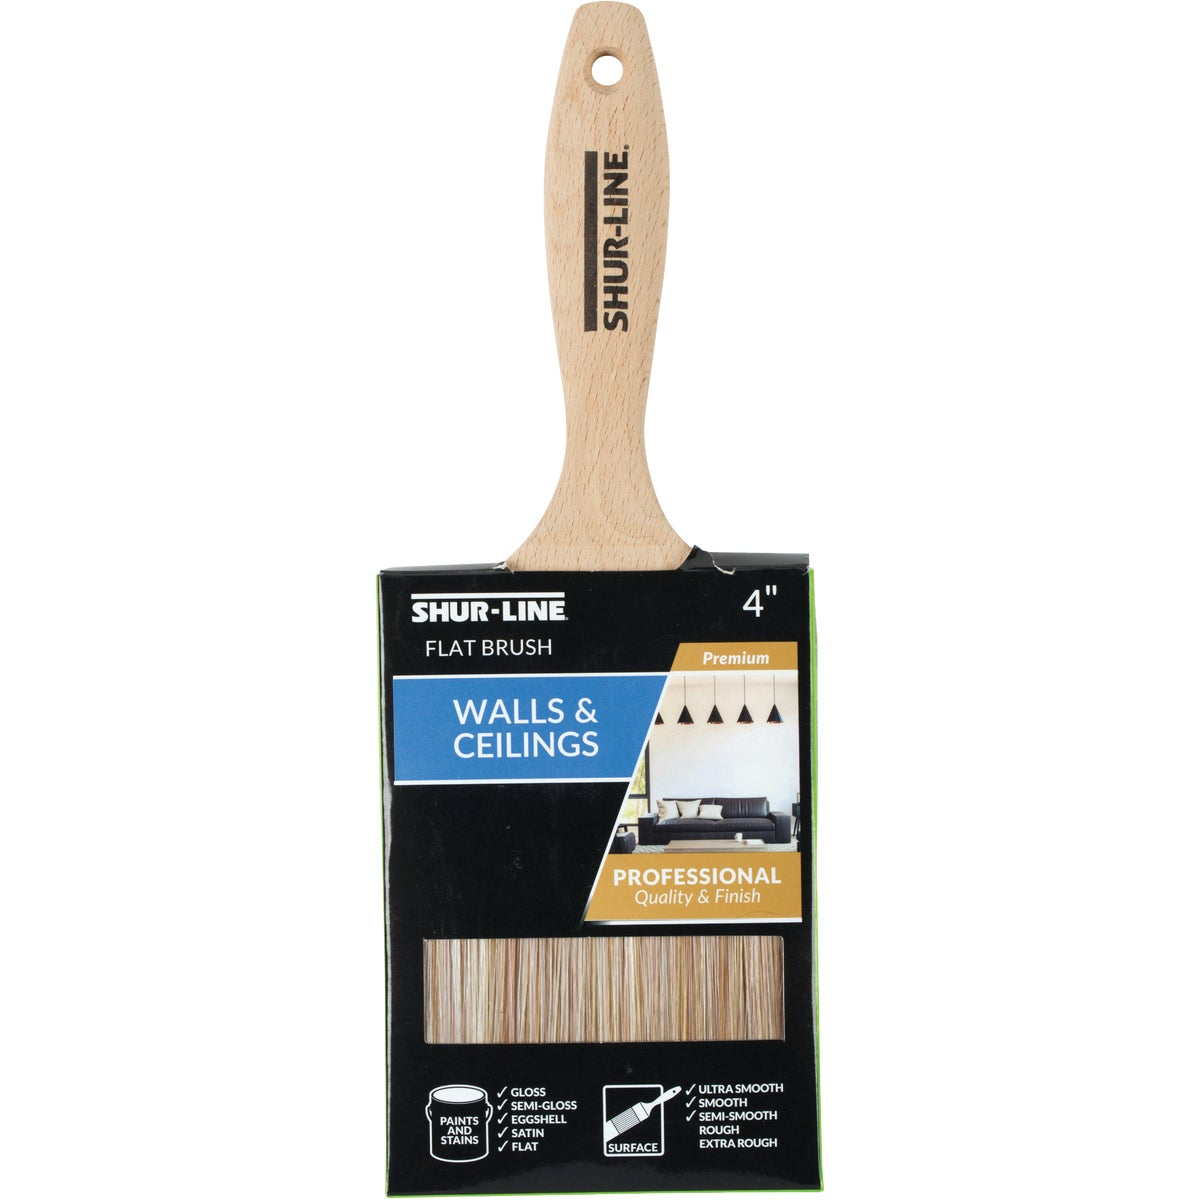 "4"" FLAT PAINT BRUSH - 55538 by Shur Line"